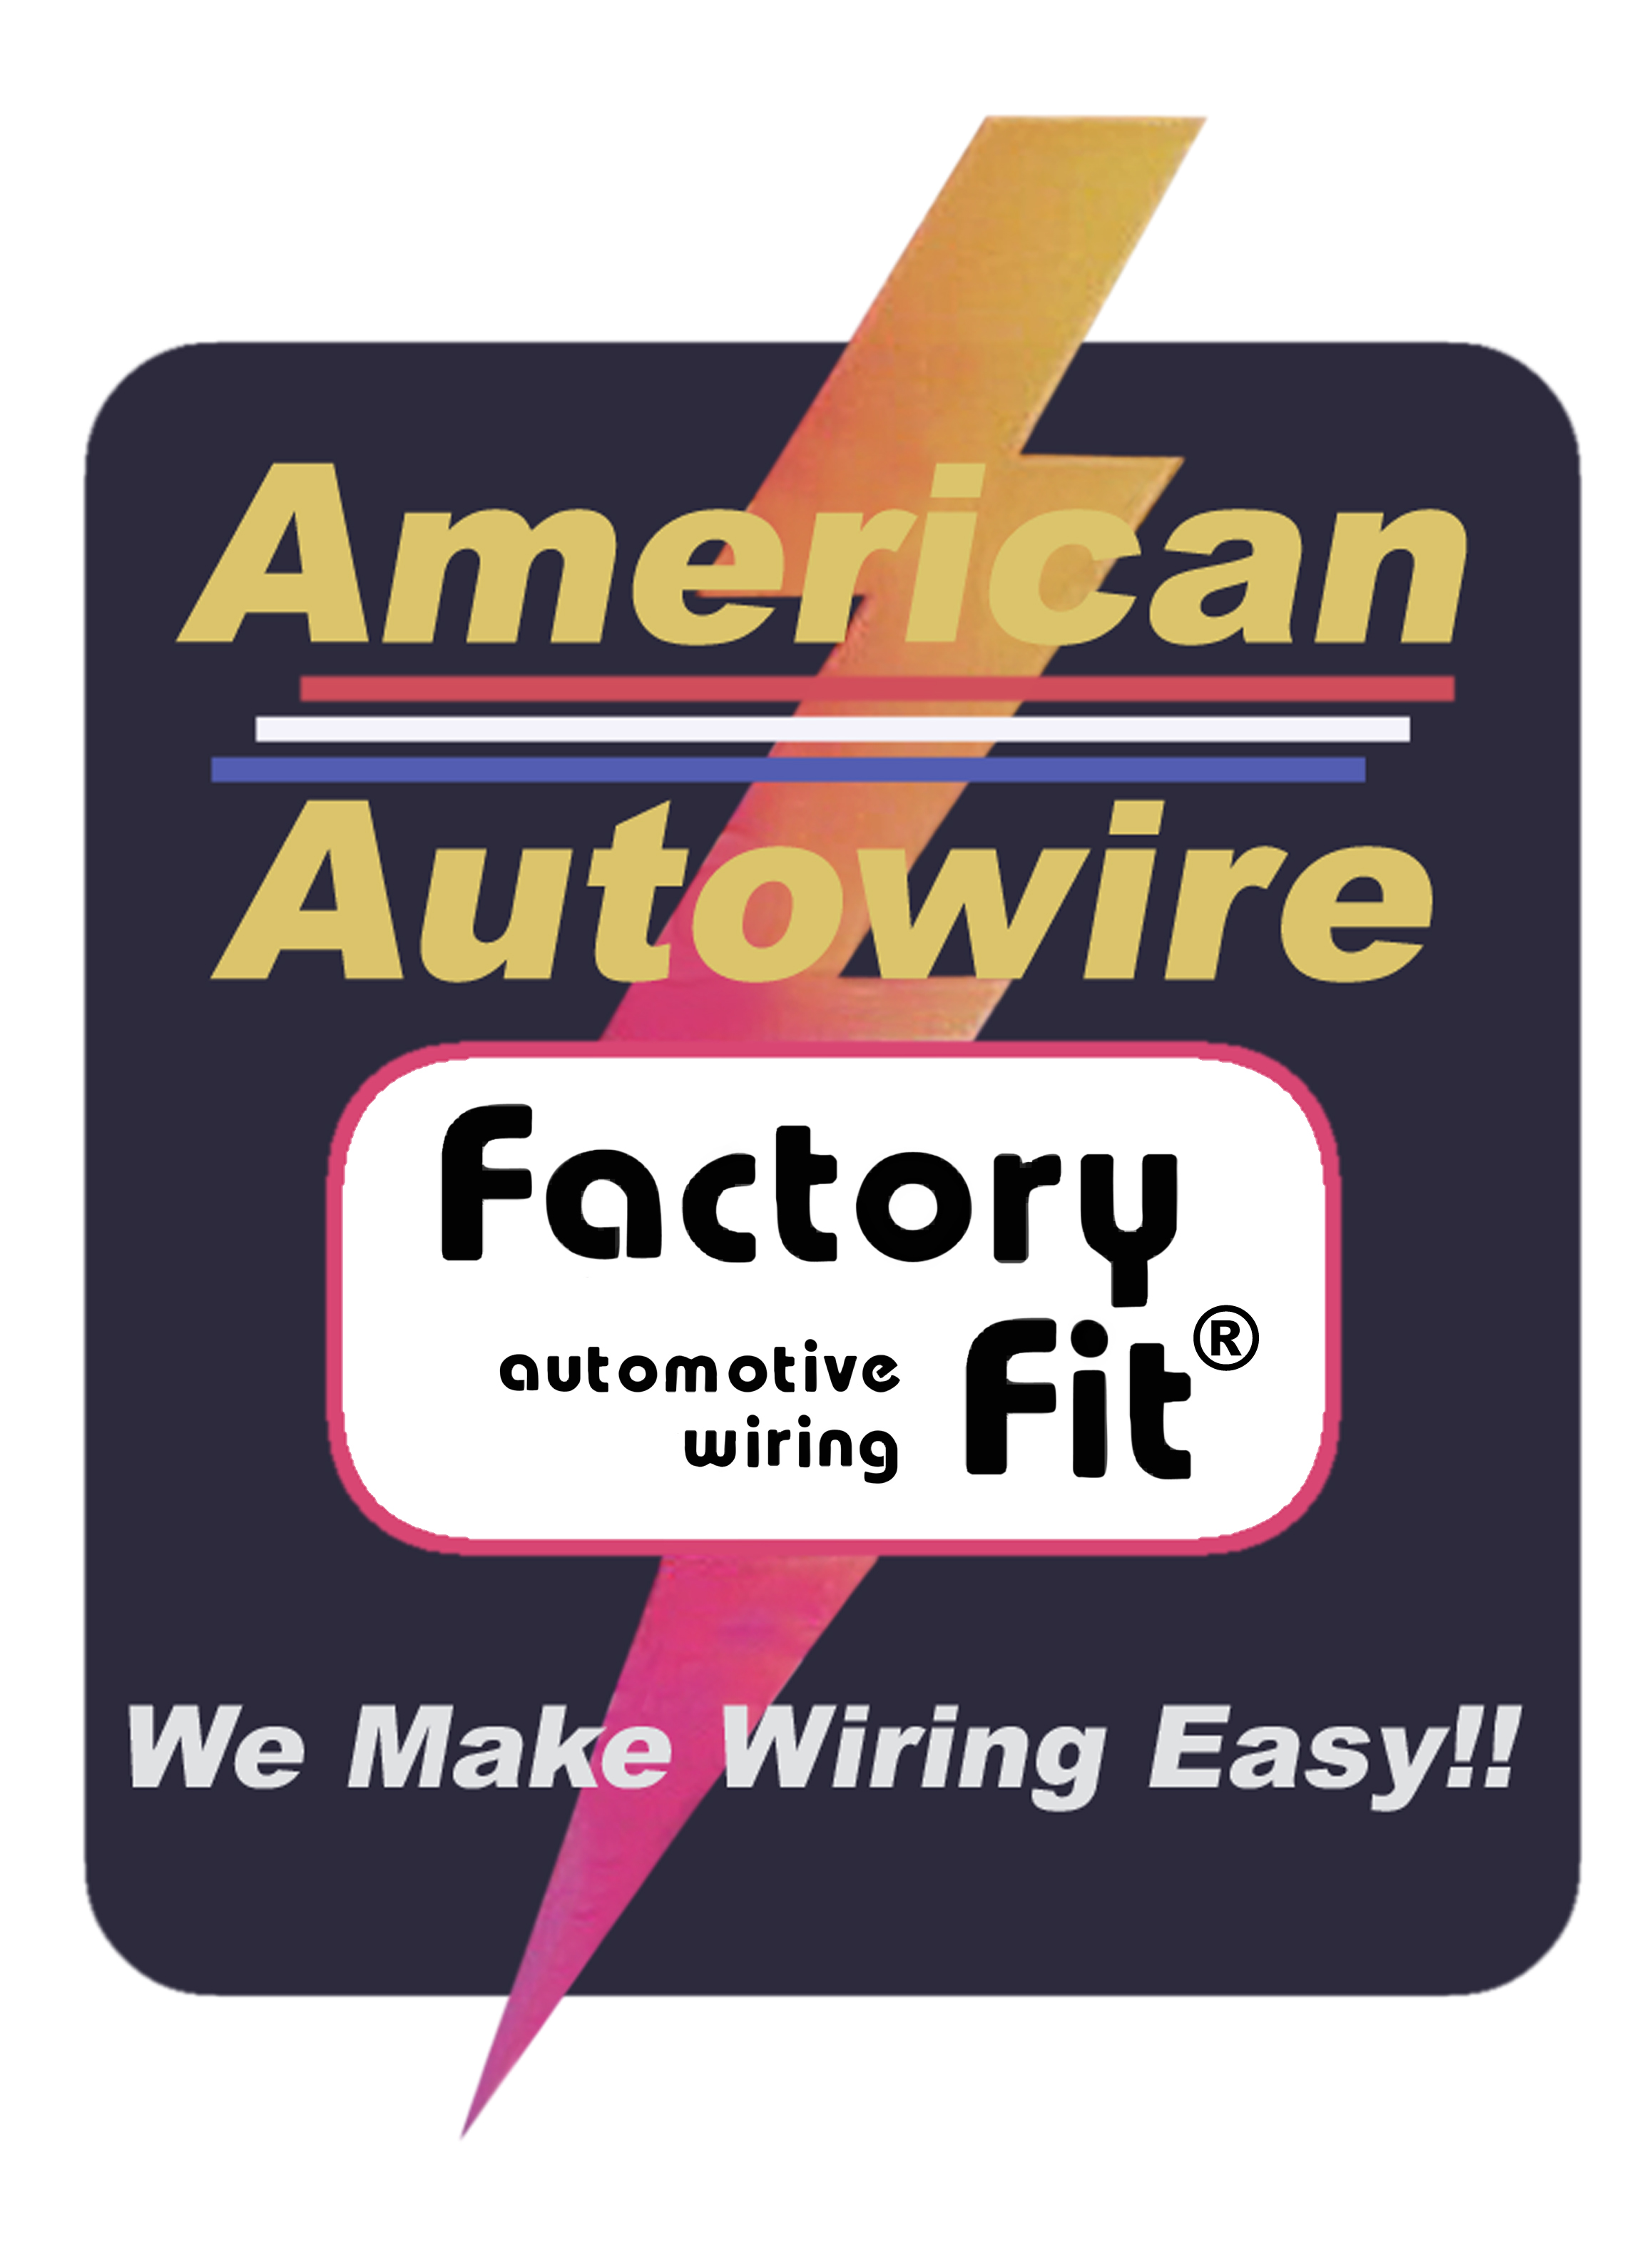 American Autowire logo